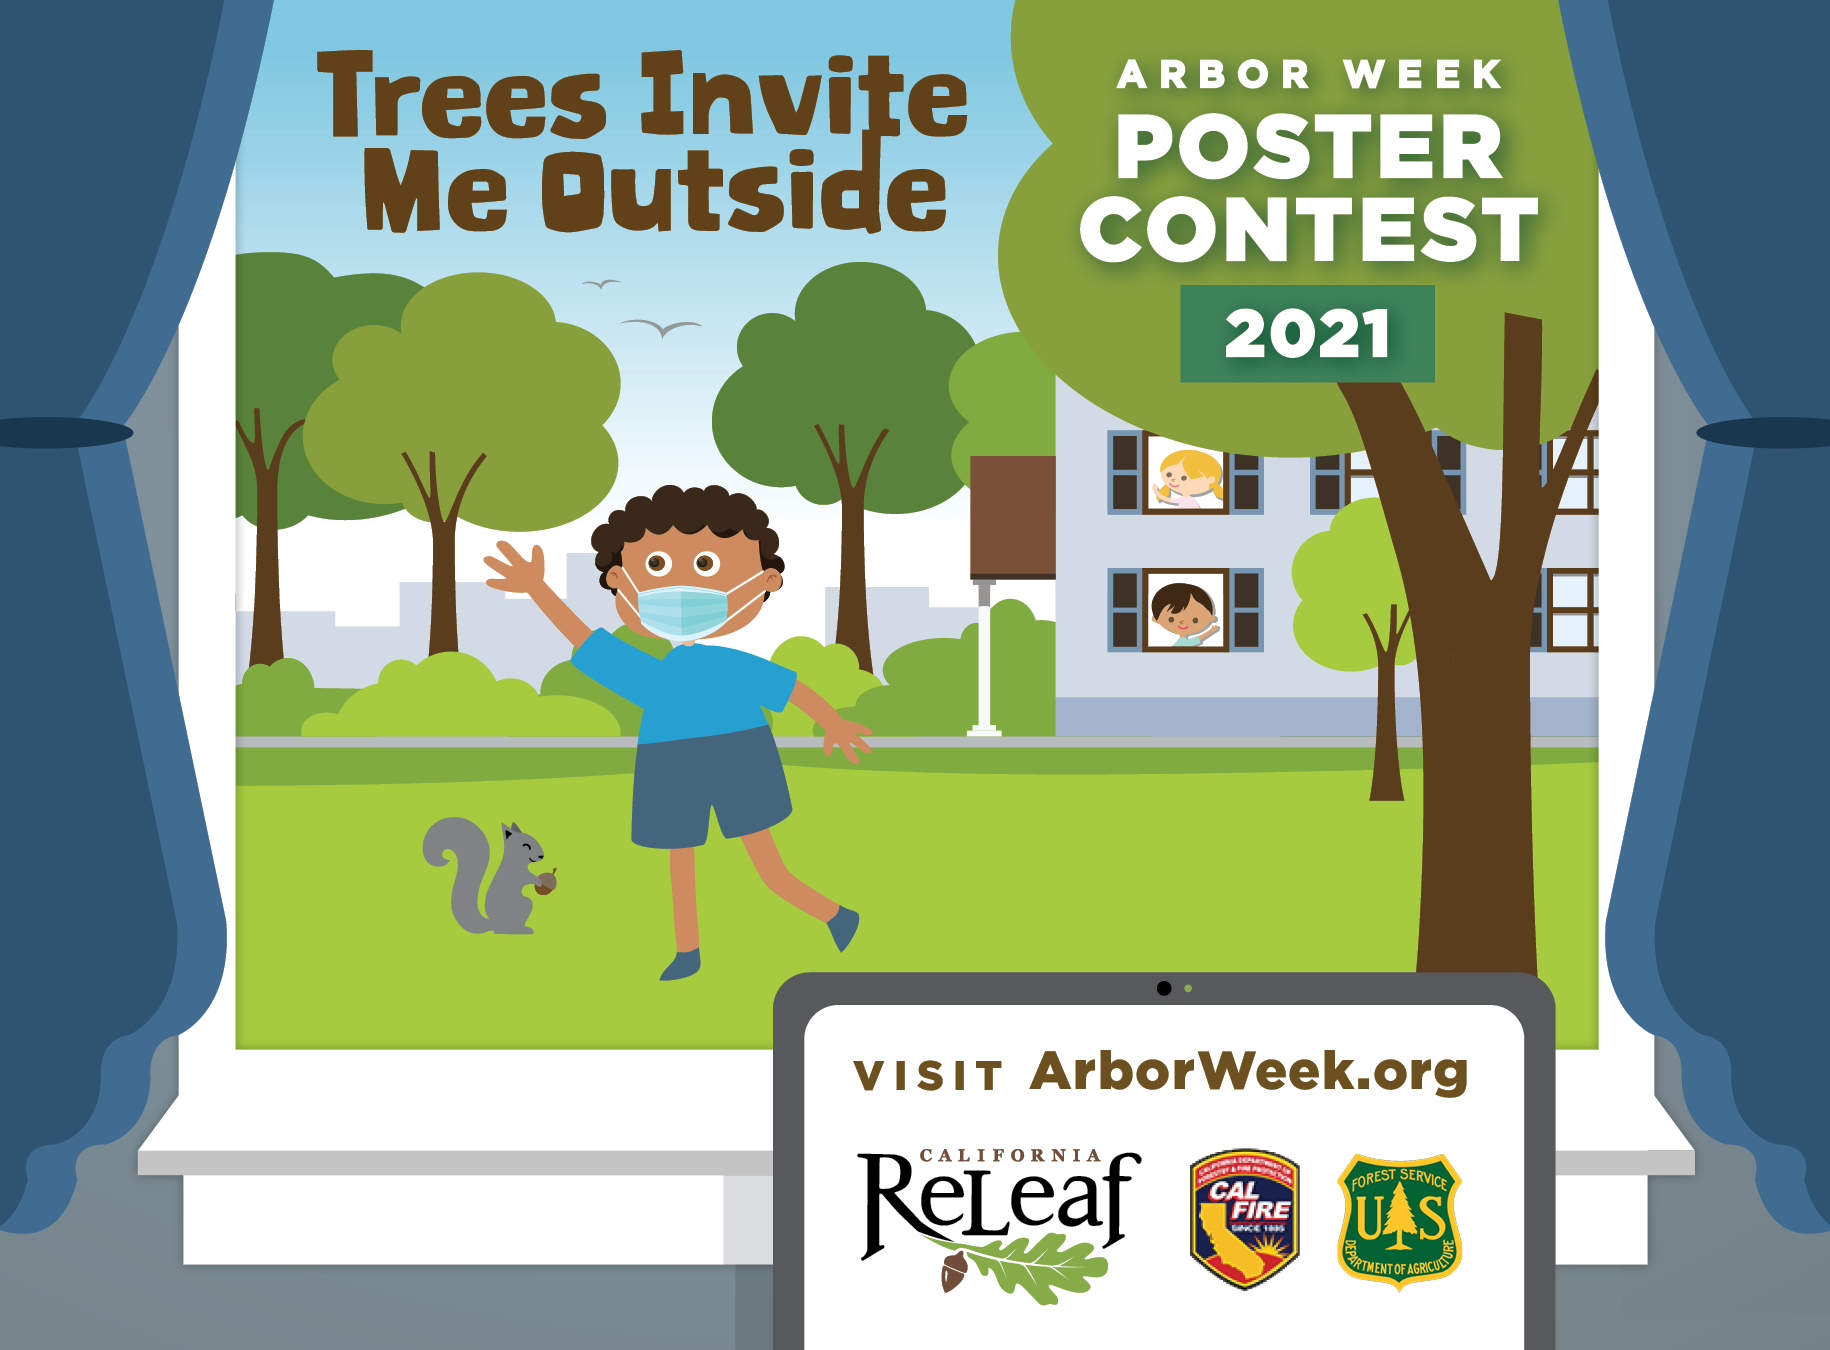 Trees Invite Me Outside: 2021 Arbor Week Poster Contest